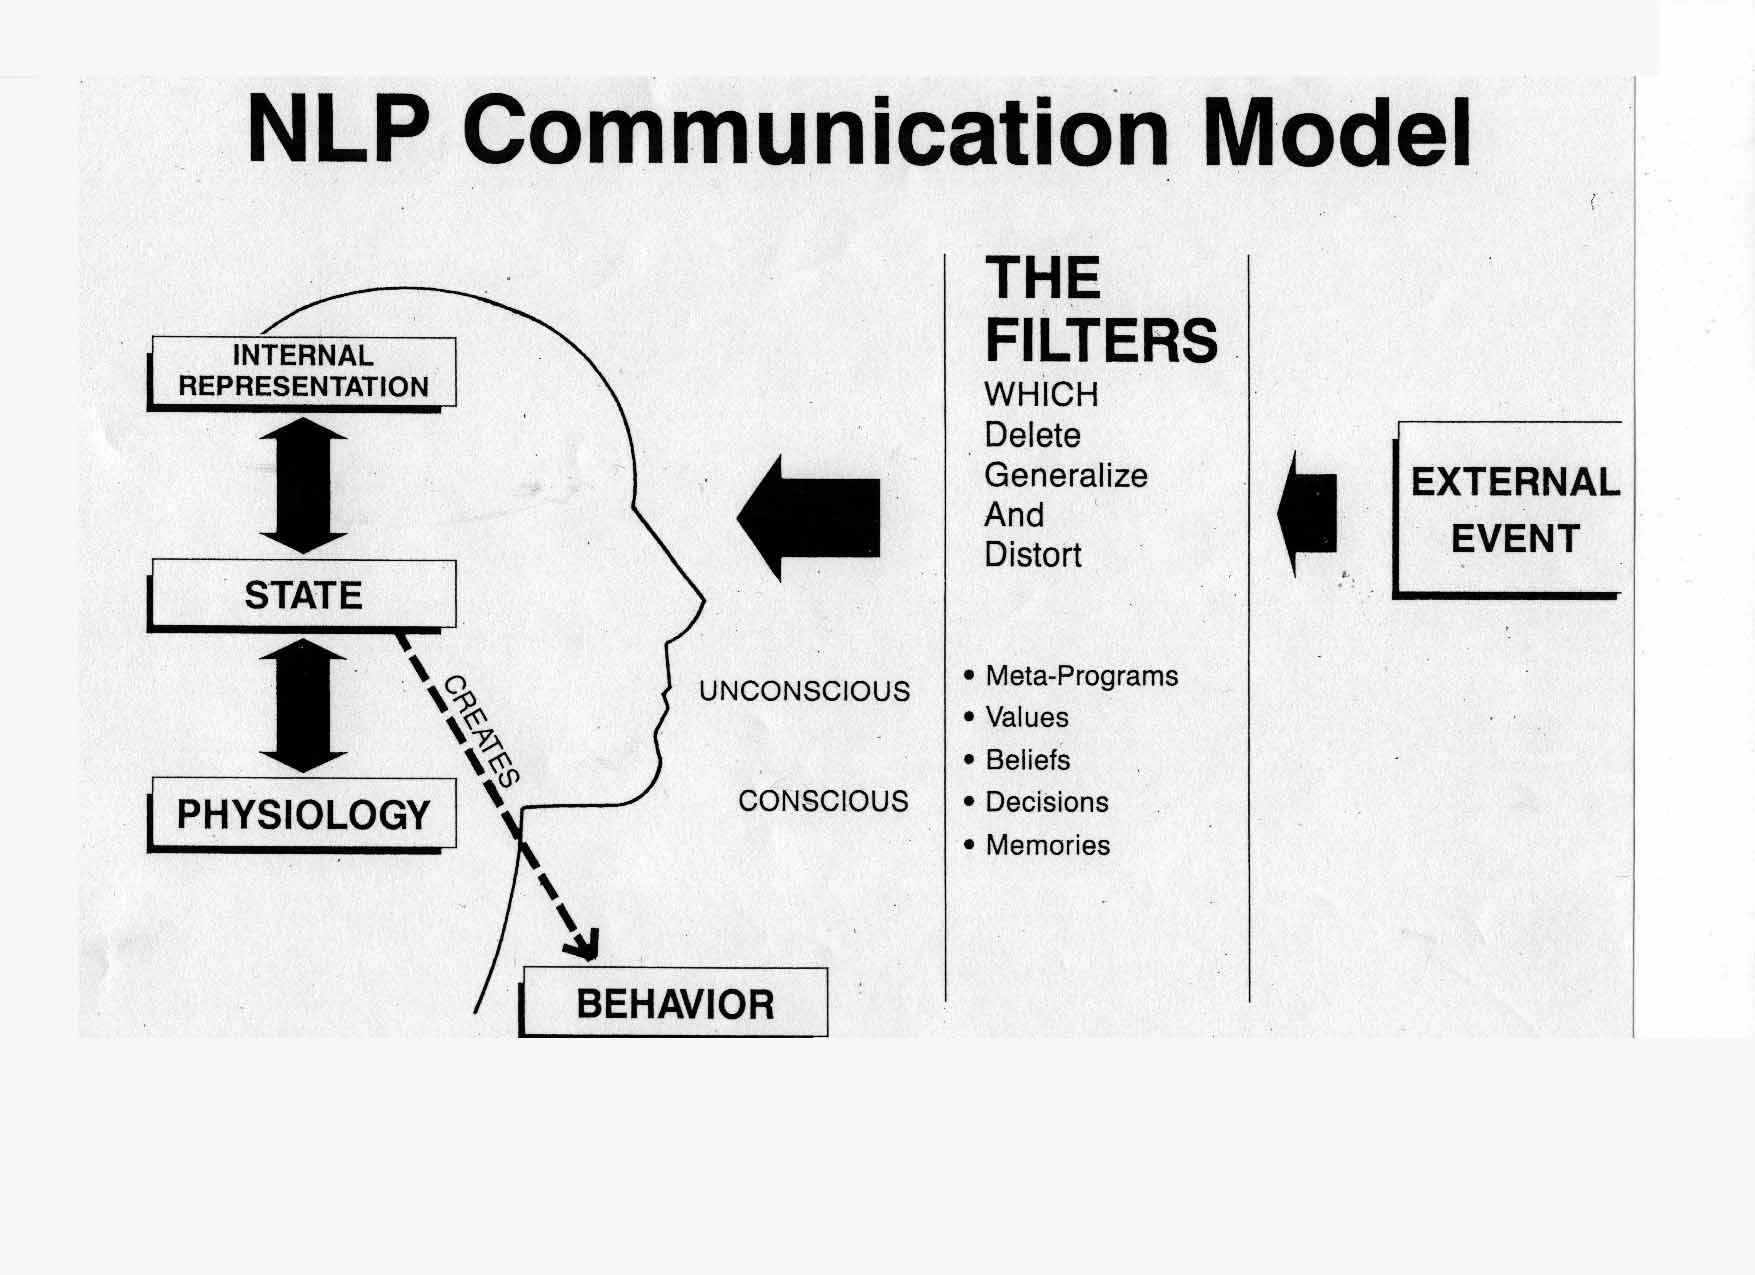 Neuro linguistic programming courses and NLP workshops can